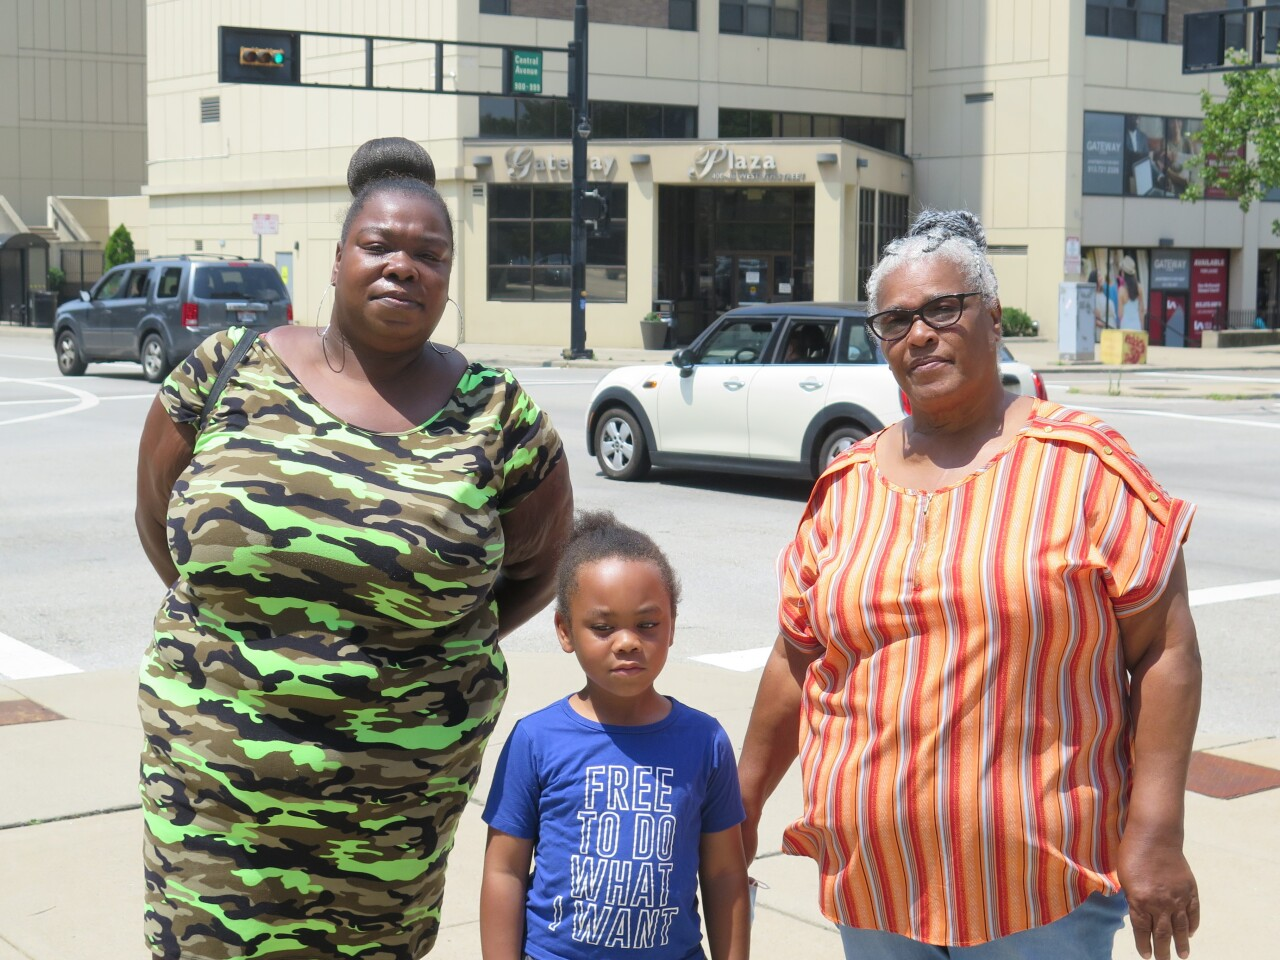 This photo shows Fonsea Bonner, left, her son in the center and Barbara Prince, right, posing outside the Gateway Plaza Apartments where they live.